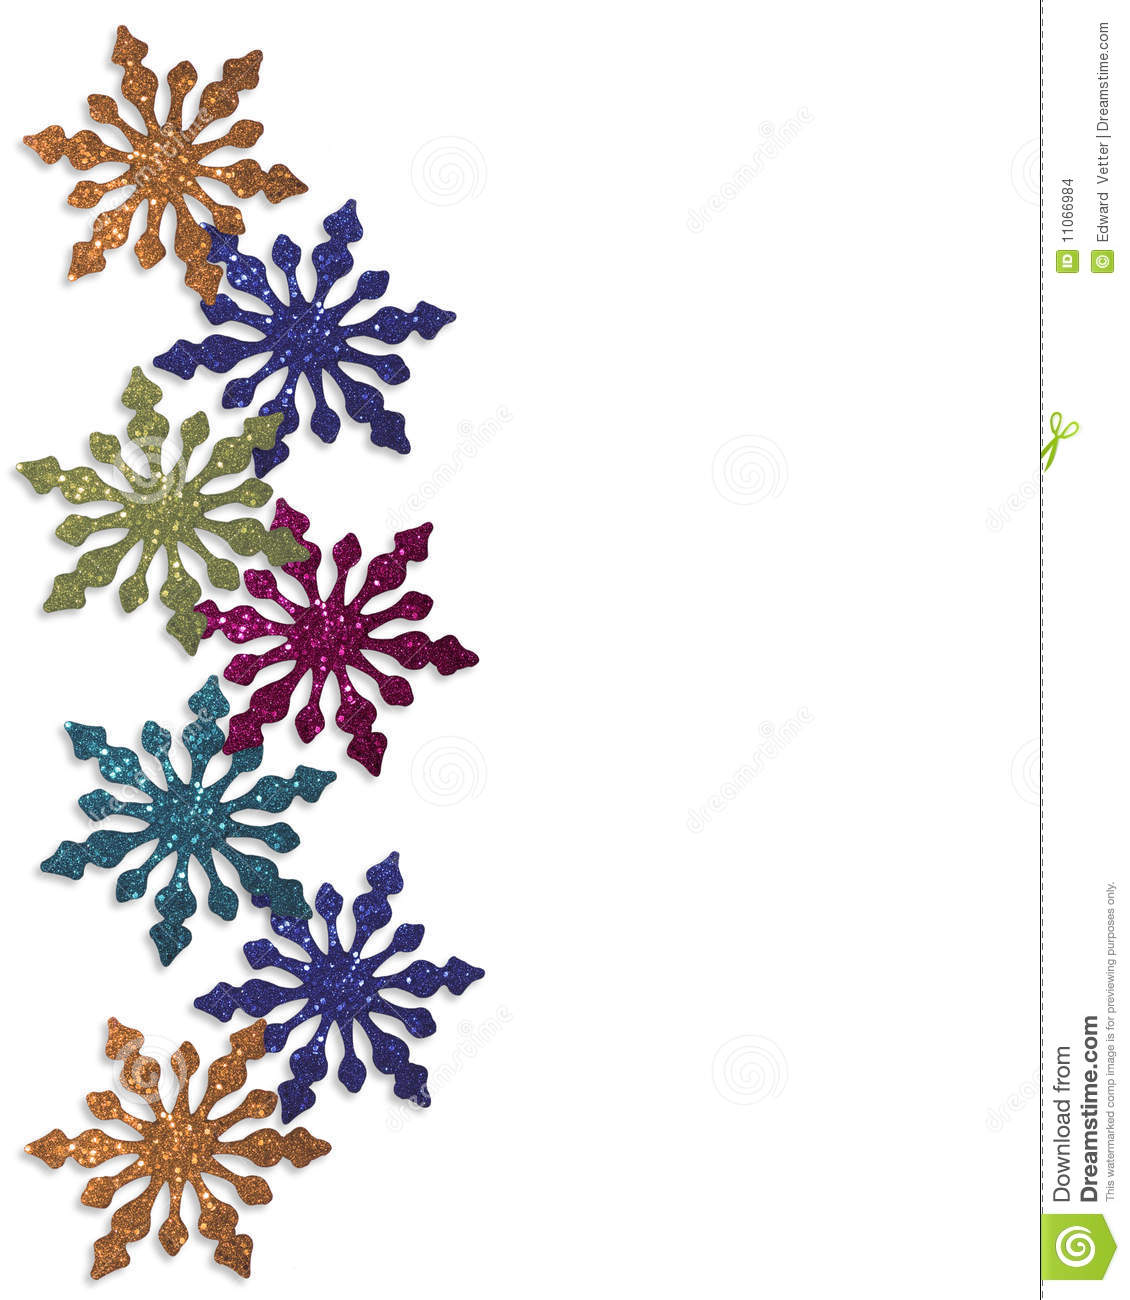 ... snowflakes ornaments for Christmas or winter background, border with